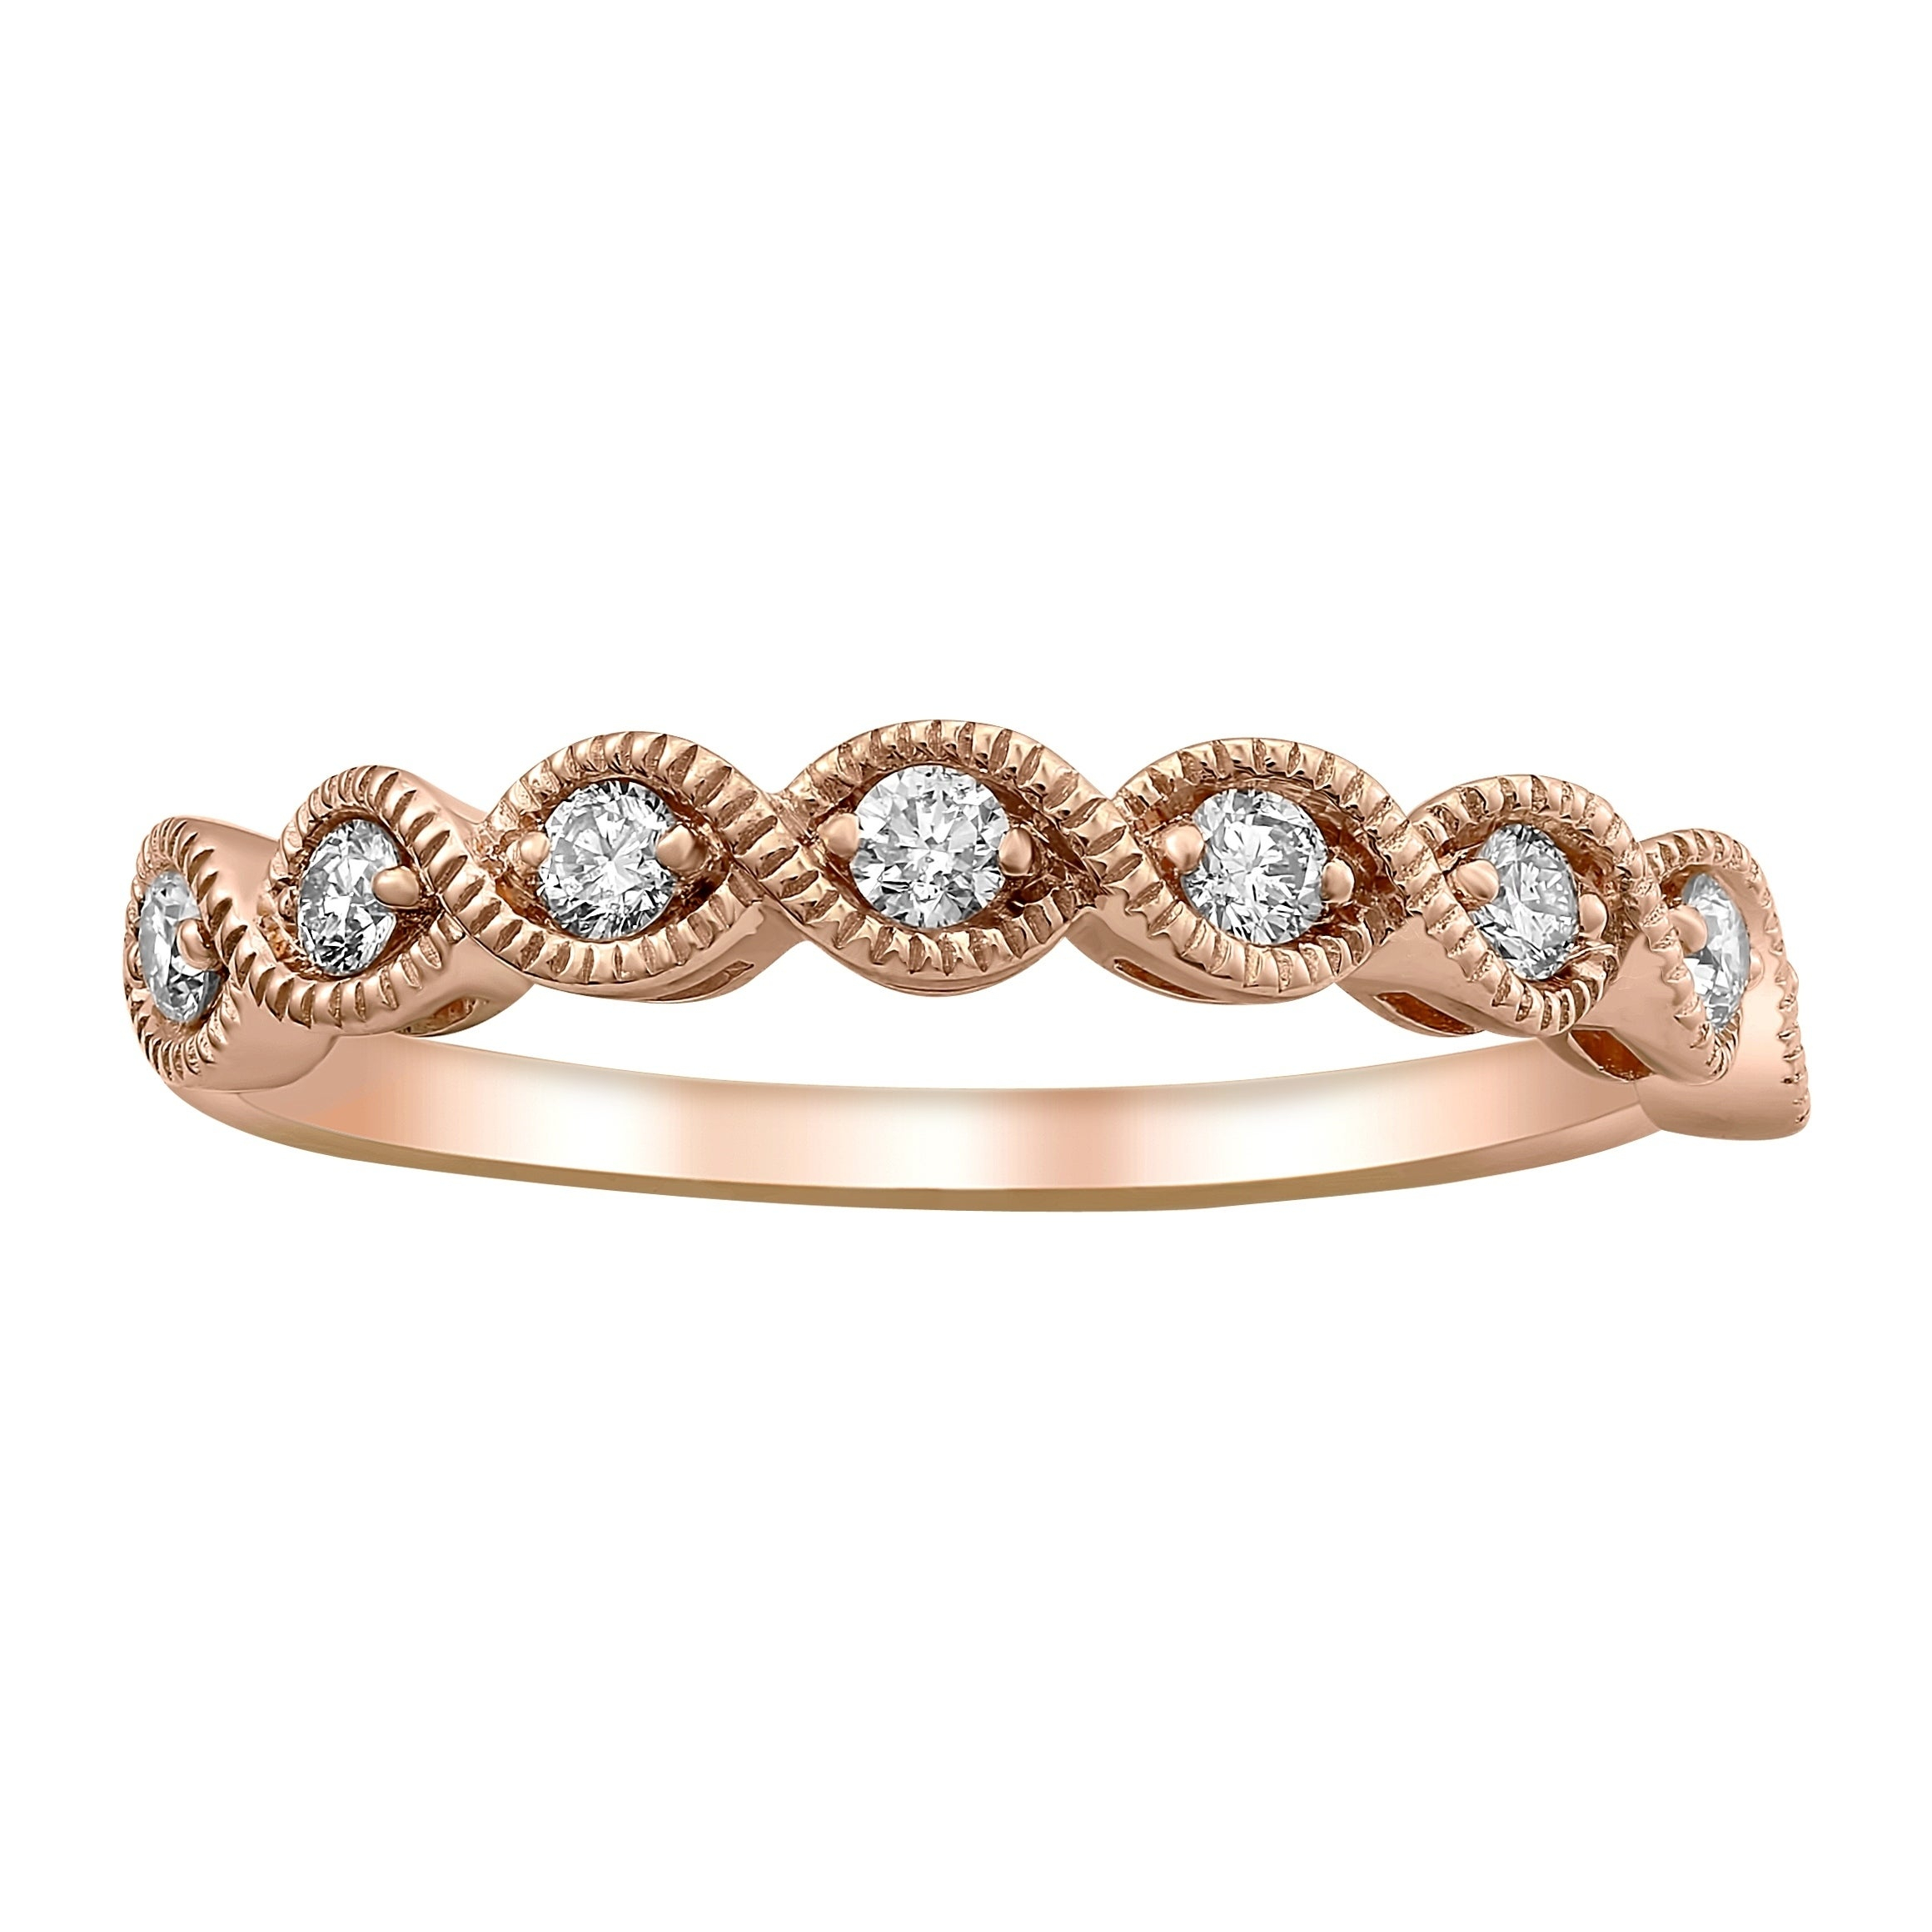 14k Rose Gold 1/4ct Tdw Diamond Vintage Inspired Anniversary Band Ring – White H I With Regard To Recent Diamond Vintage Style Anniversary Bands In Gold (View 9 of 25)